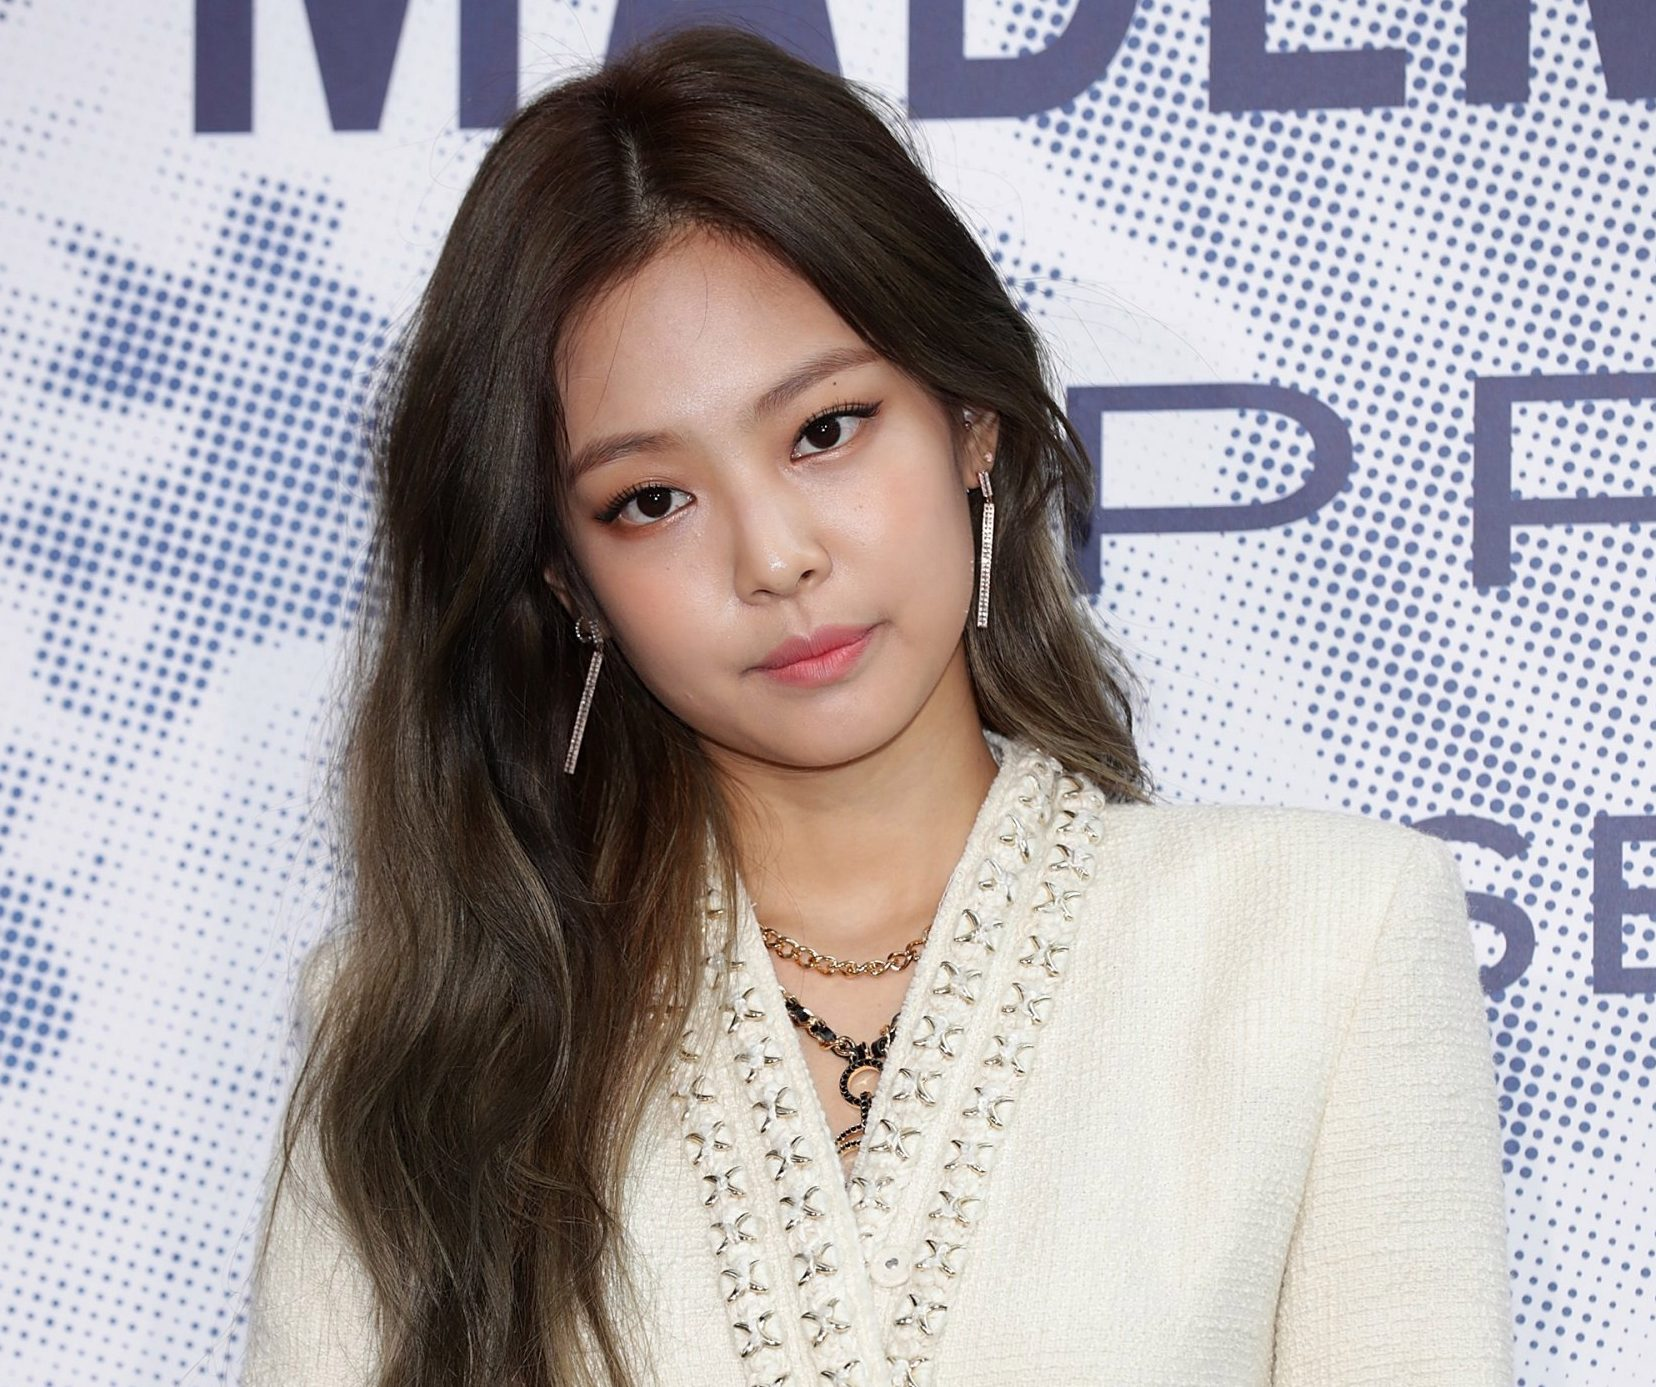 Jennie of girl group BLACKPINK attends the Mademoiselle Prive exhibition at the D-Museum